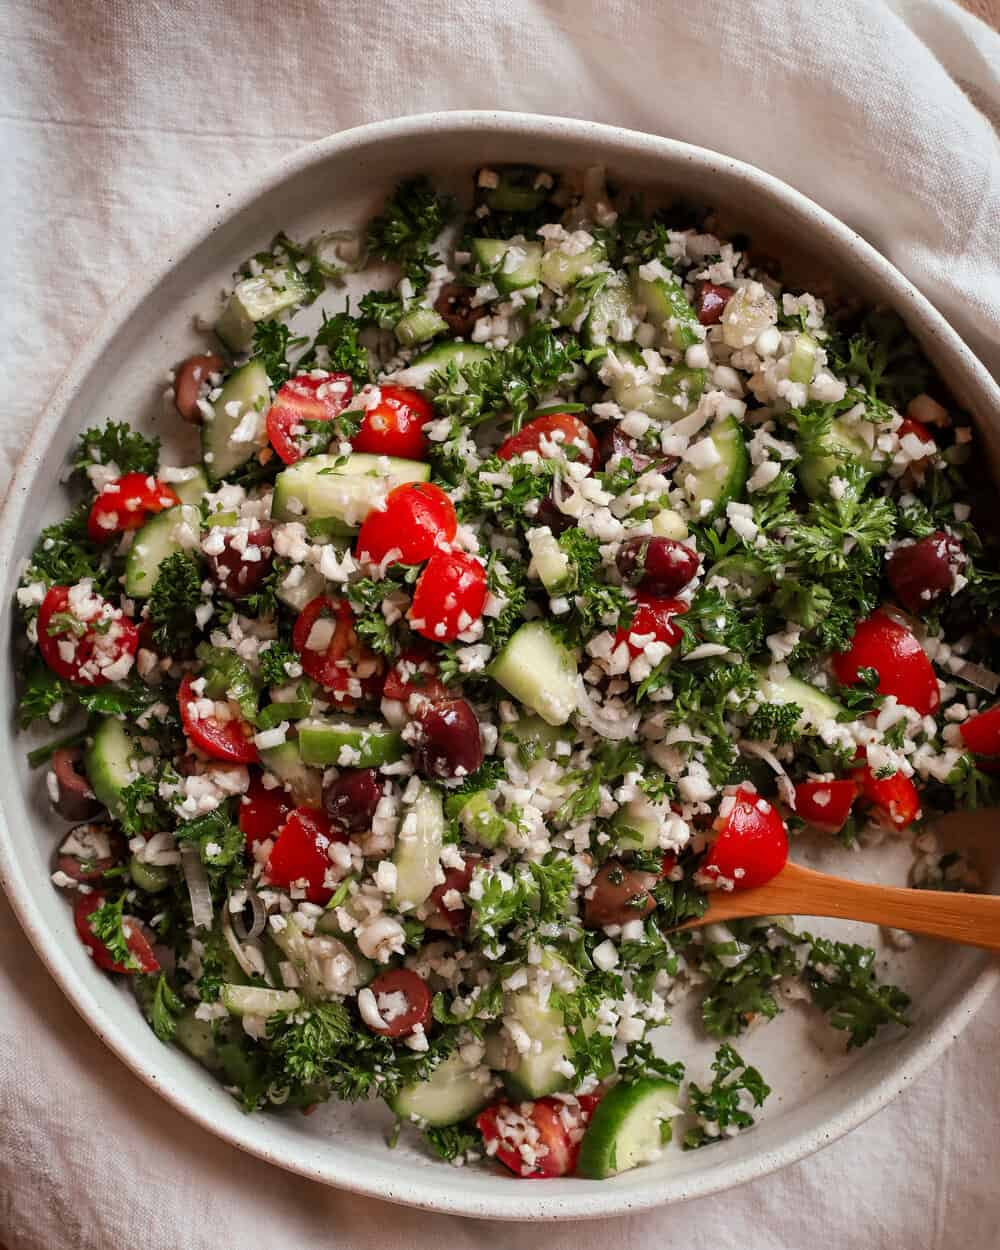 GRAIN FREE TABOULEH SALAD - INGREDIENTS3 cups grated cauliflower (about one medium head)1/4 cup chopped scallions1/4 cup chopped fresh mint3 Persian cucumbers, diced (no need to peel)1 cup cherry tomatoes, halved3/4 cup kalamata olives, pitted and chopped1 bunch parsley, washed and chopped roughly1 clove garlic, mashed1/3 cup olive oil1 tsp sea salt1 tsp ground pepper1 lemon, juiced